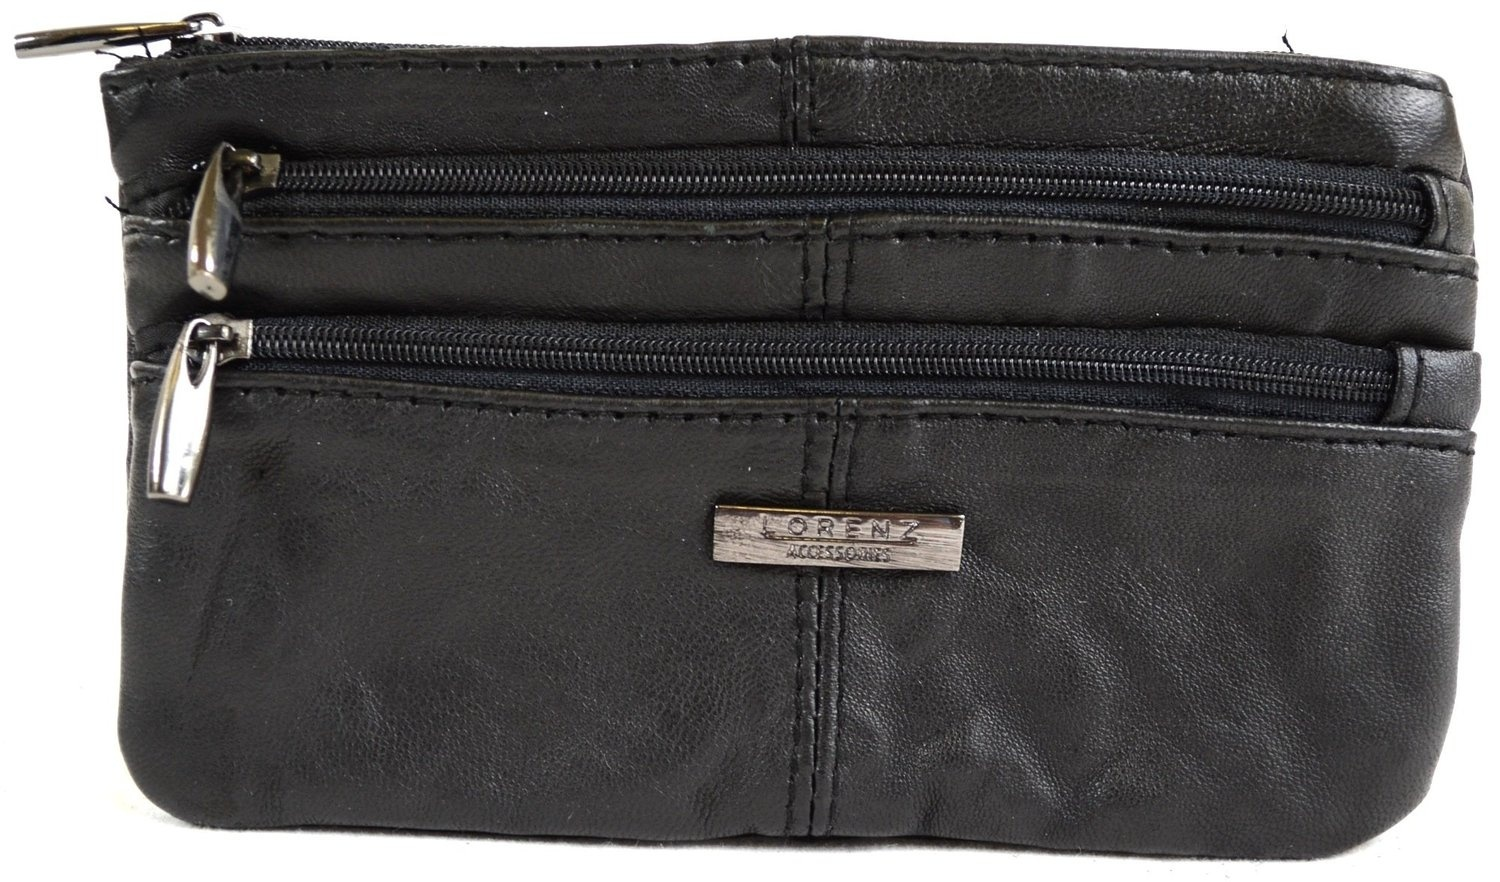 Ladies Super Soft Nappa Leather Tri-Fold Purse with Zip Round Pocket